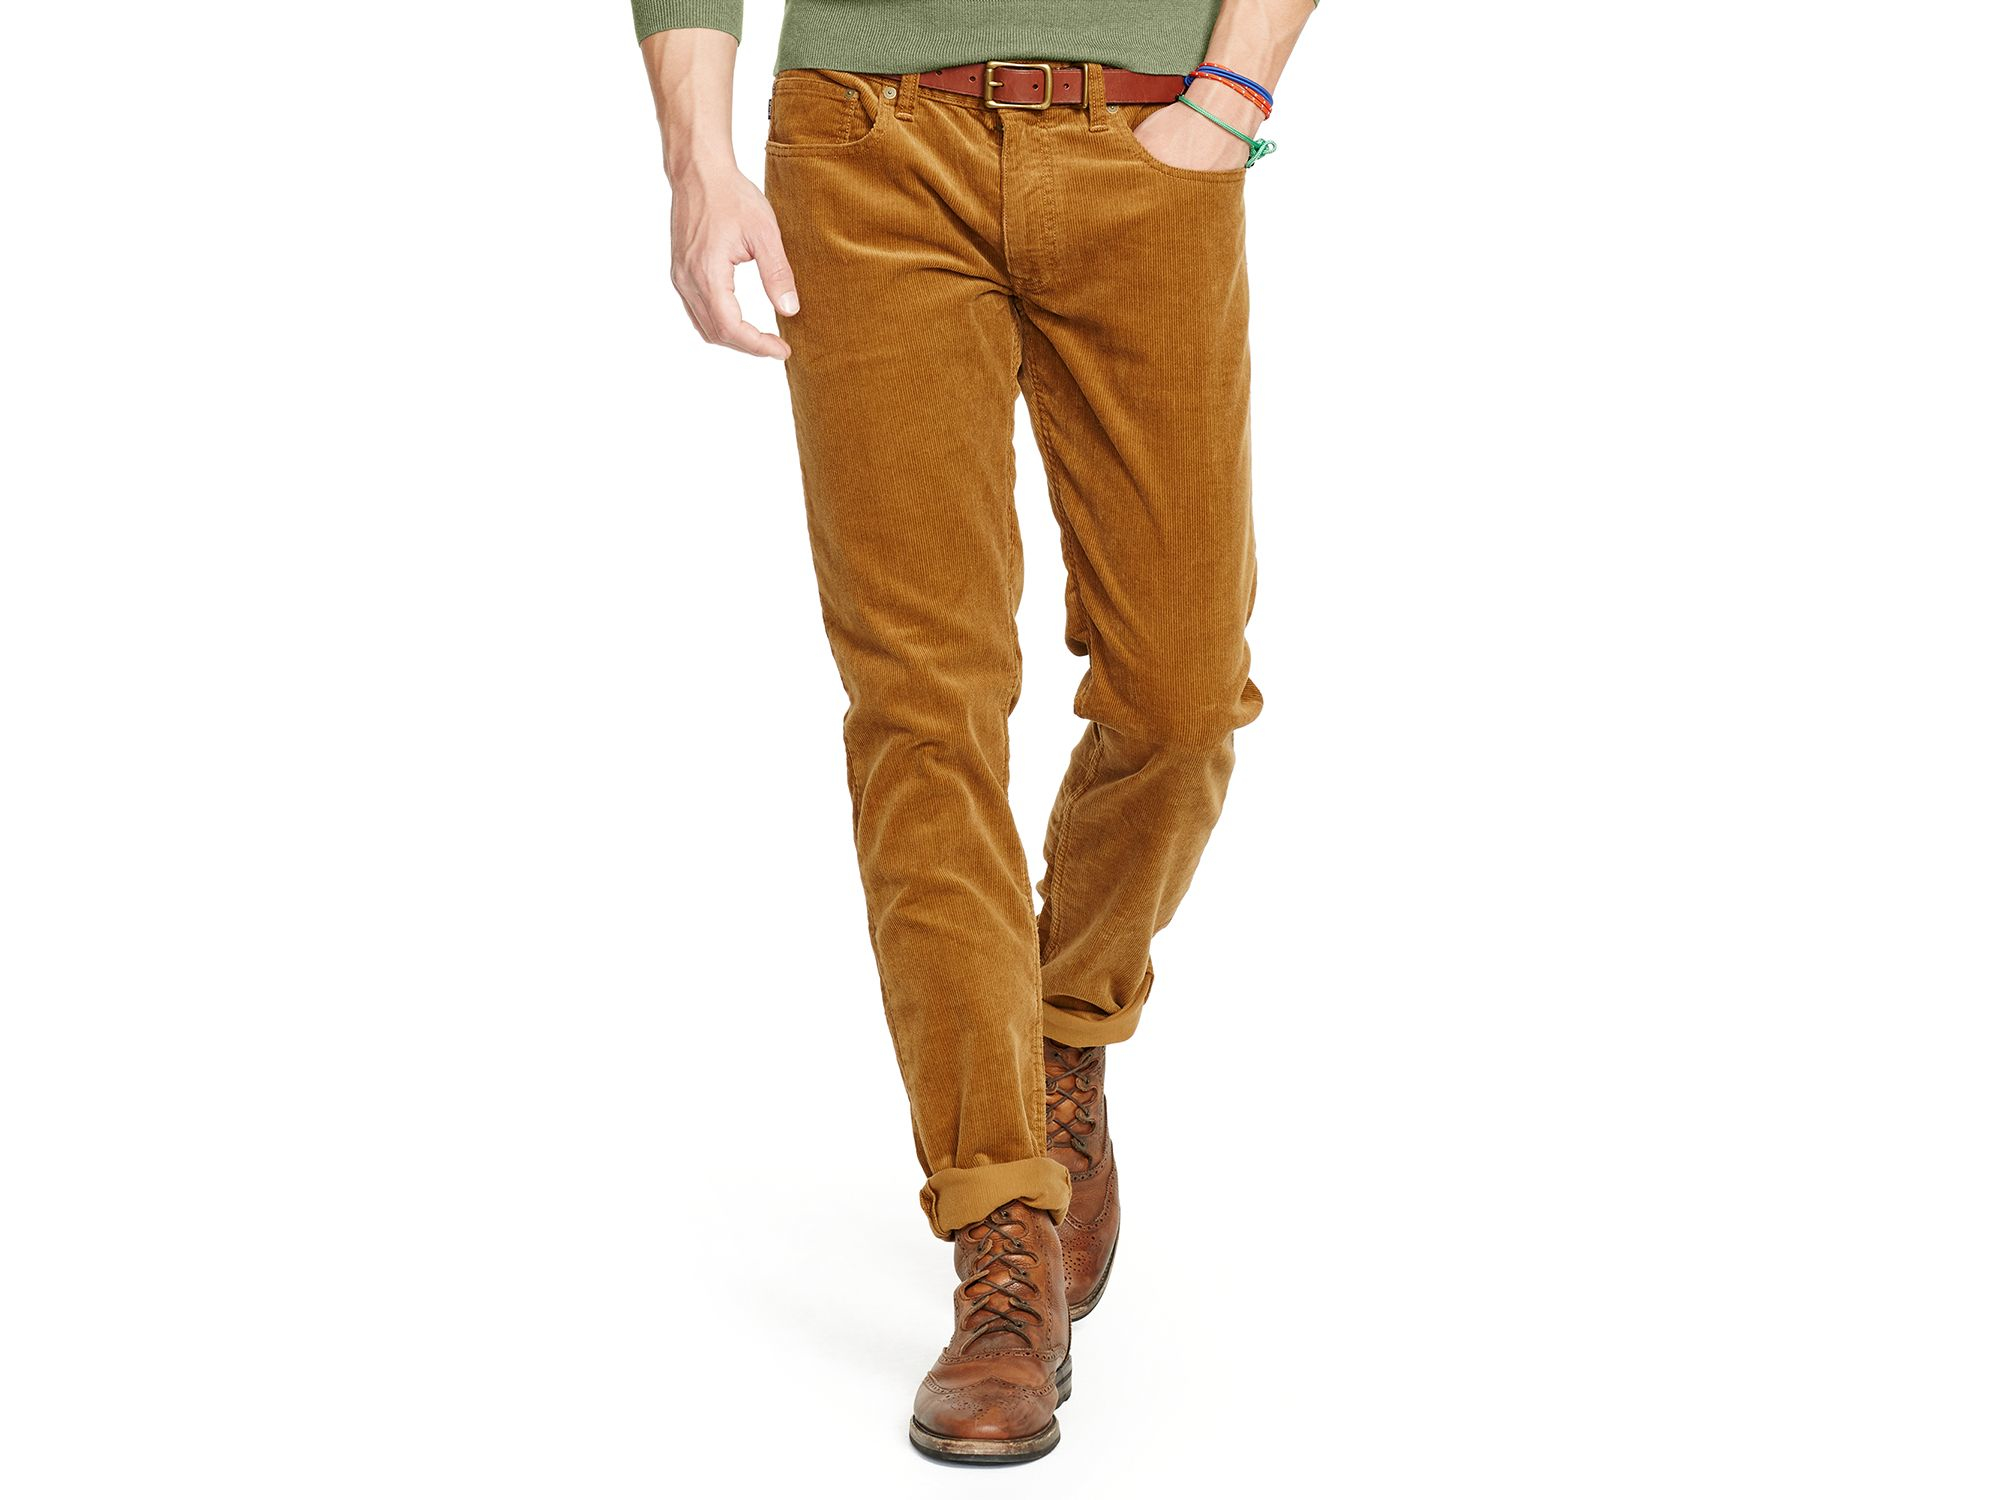 light brown corduroy pants - Pi Pants